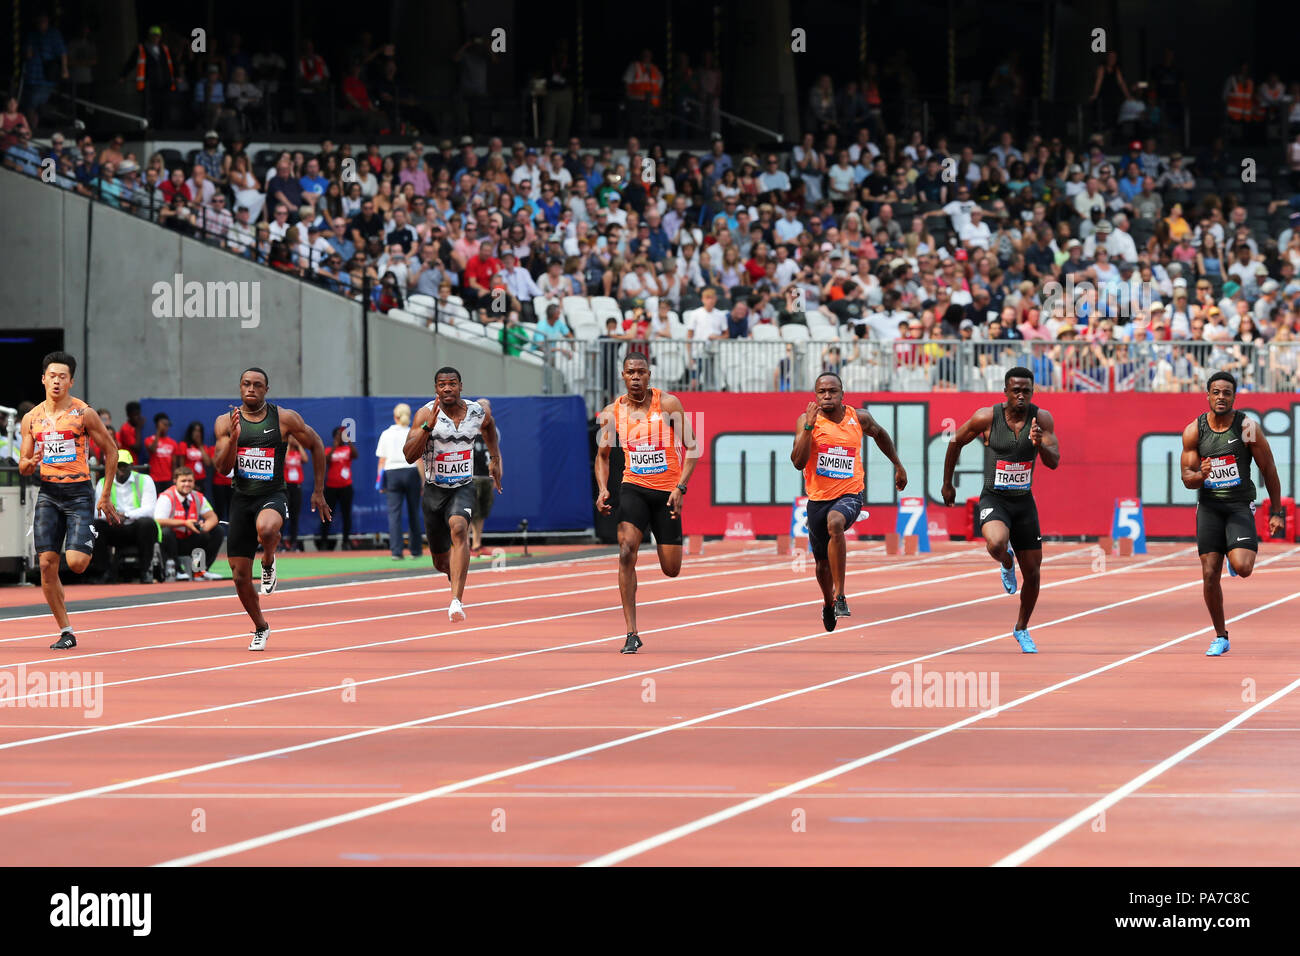 London, UK. 21st July 18. Isiah YOUNG (United States of America), Tyquendo TRACEY (Jamaica), Akani SIMBINE (South Africa), Zharnel HUGHES (Great Britain), Yohan BLAKE (Jamaica), Ronnie BAKER (United States of America), Zhenye XIE (China) competing in the Men's 100m Final at the 2018, IAAF Diamond League, Anniversary Games, Queen Elizabeth Olympic Park, Stratford, London, UK. Credit: Simon Balson/Alamy Live News - Stock Image